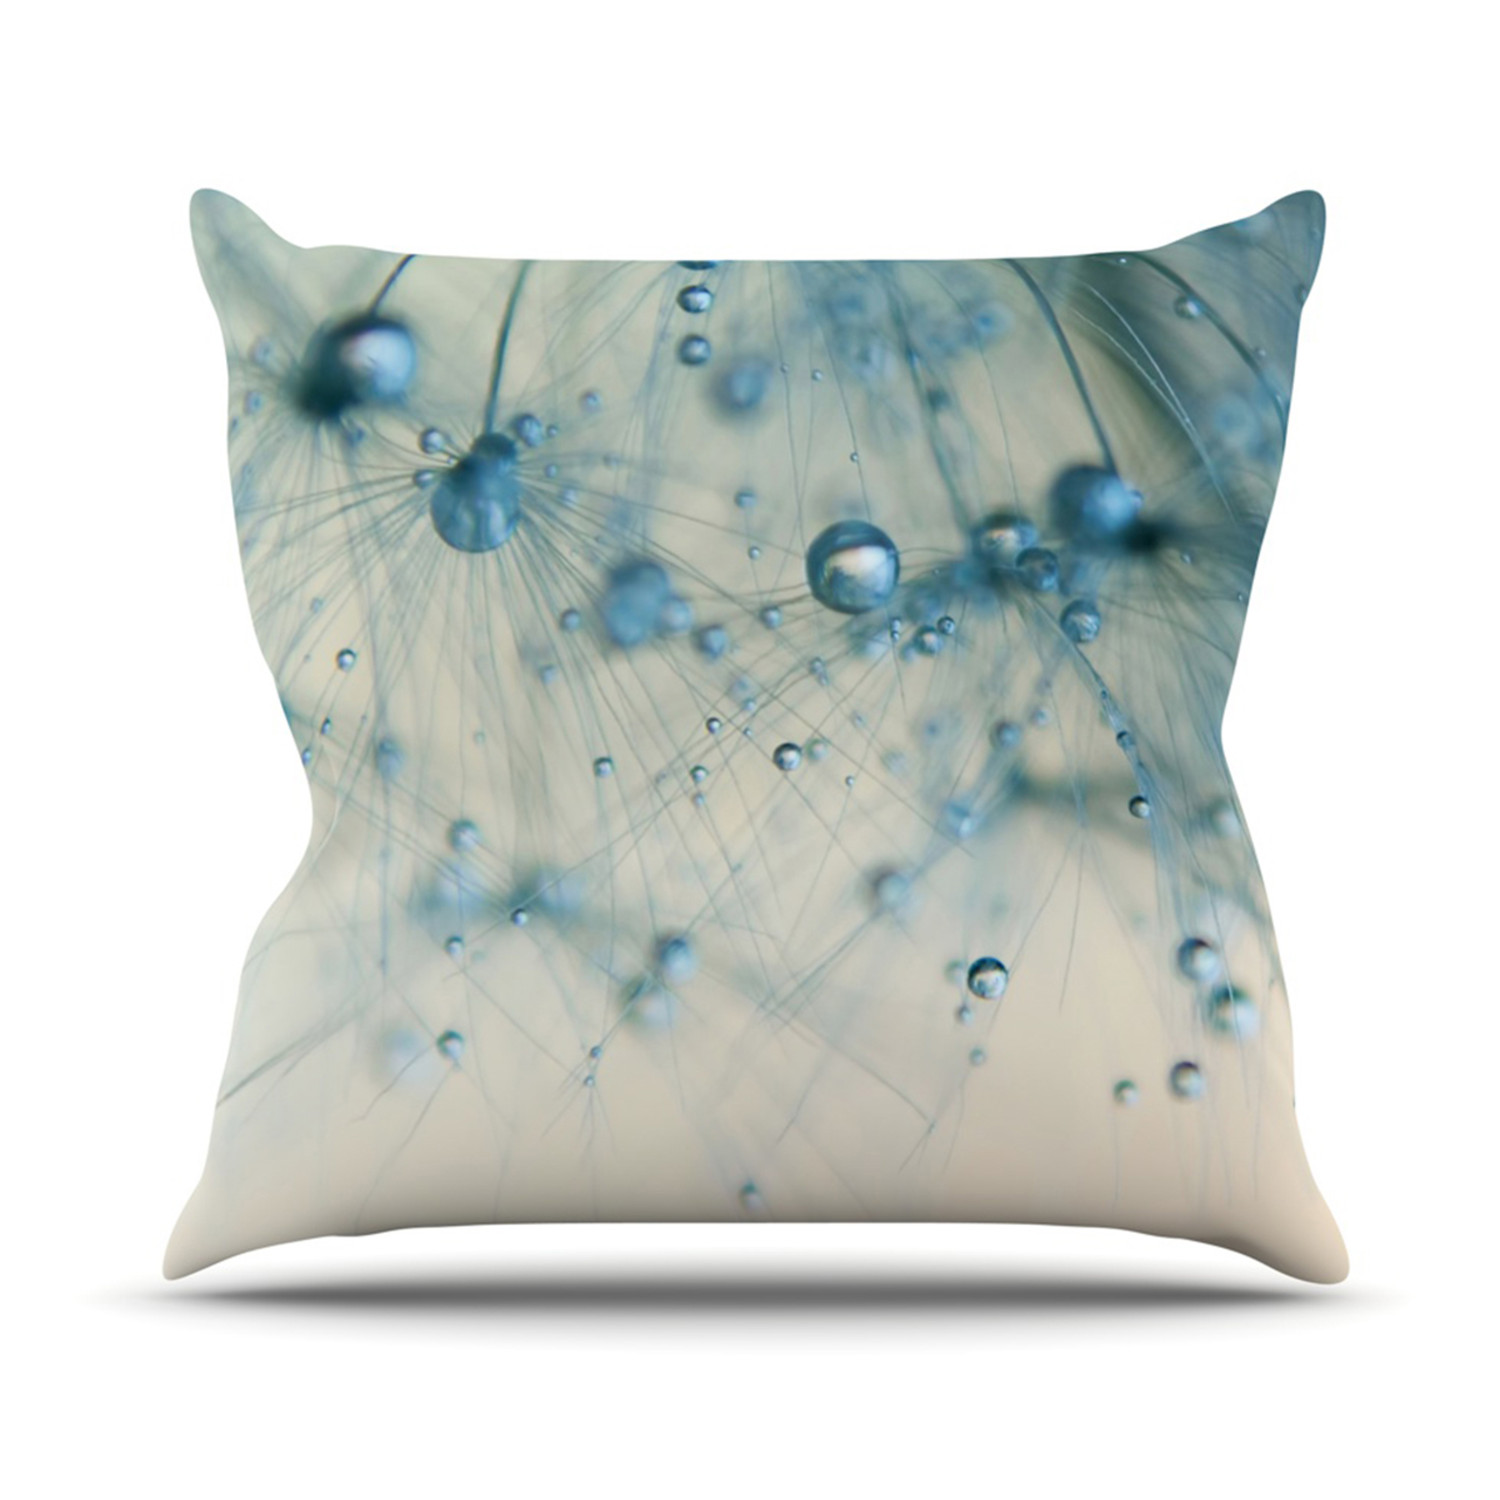 Decorative Pillow With Pearls :